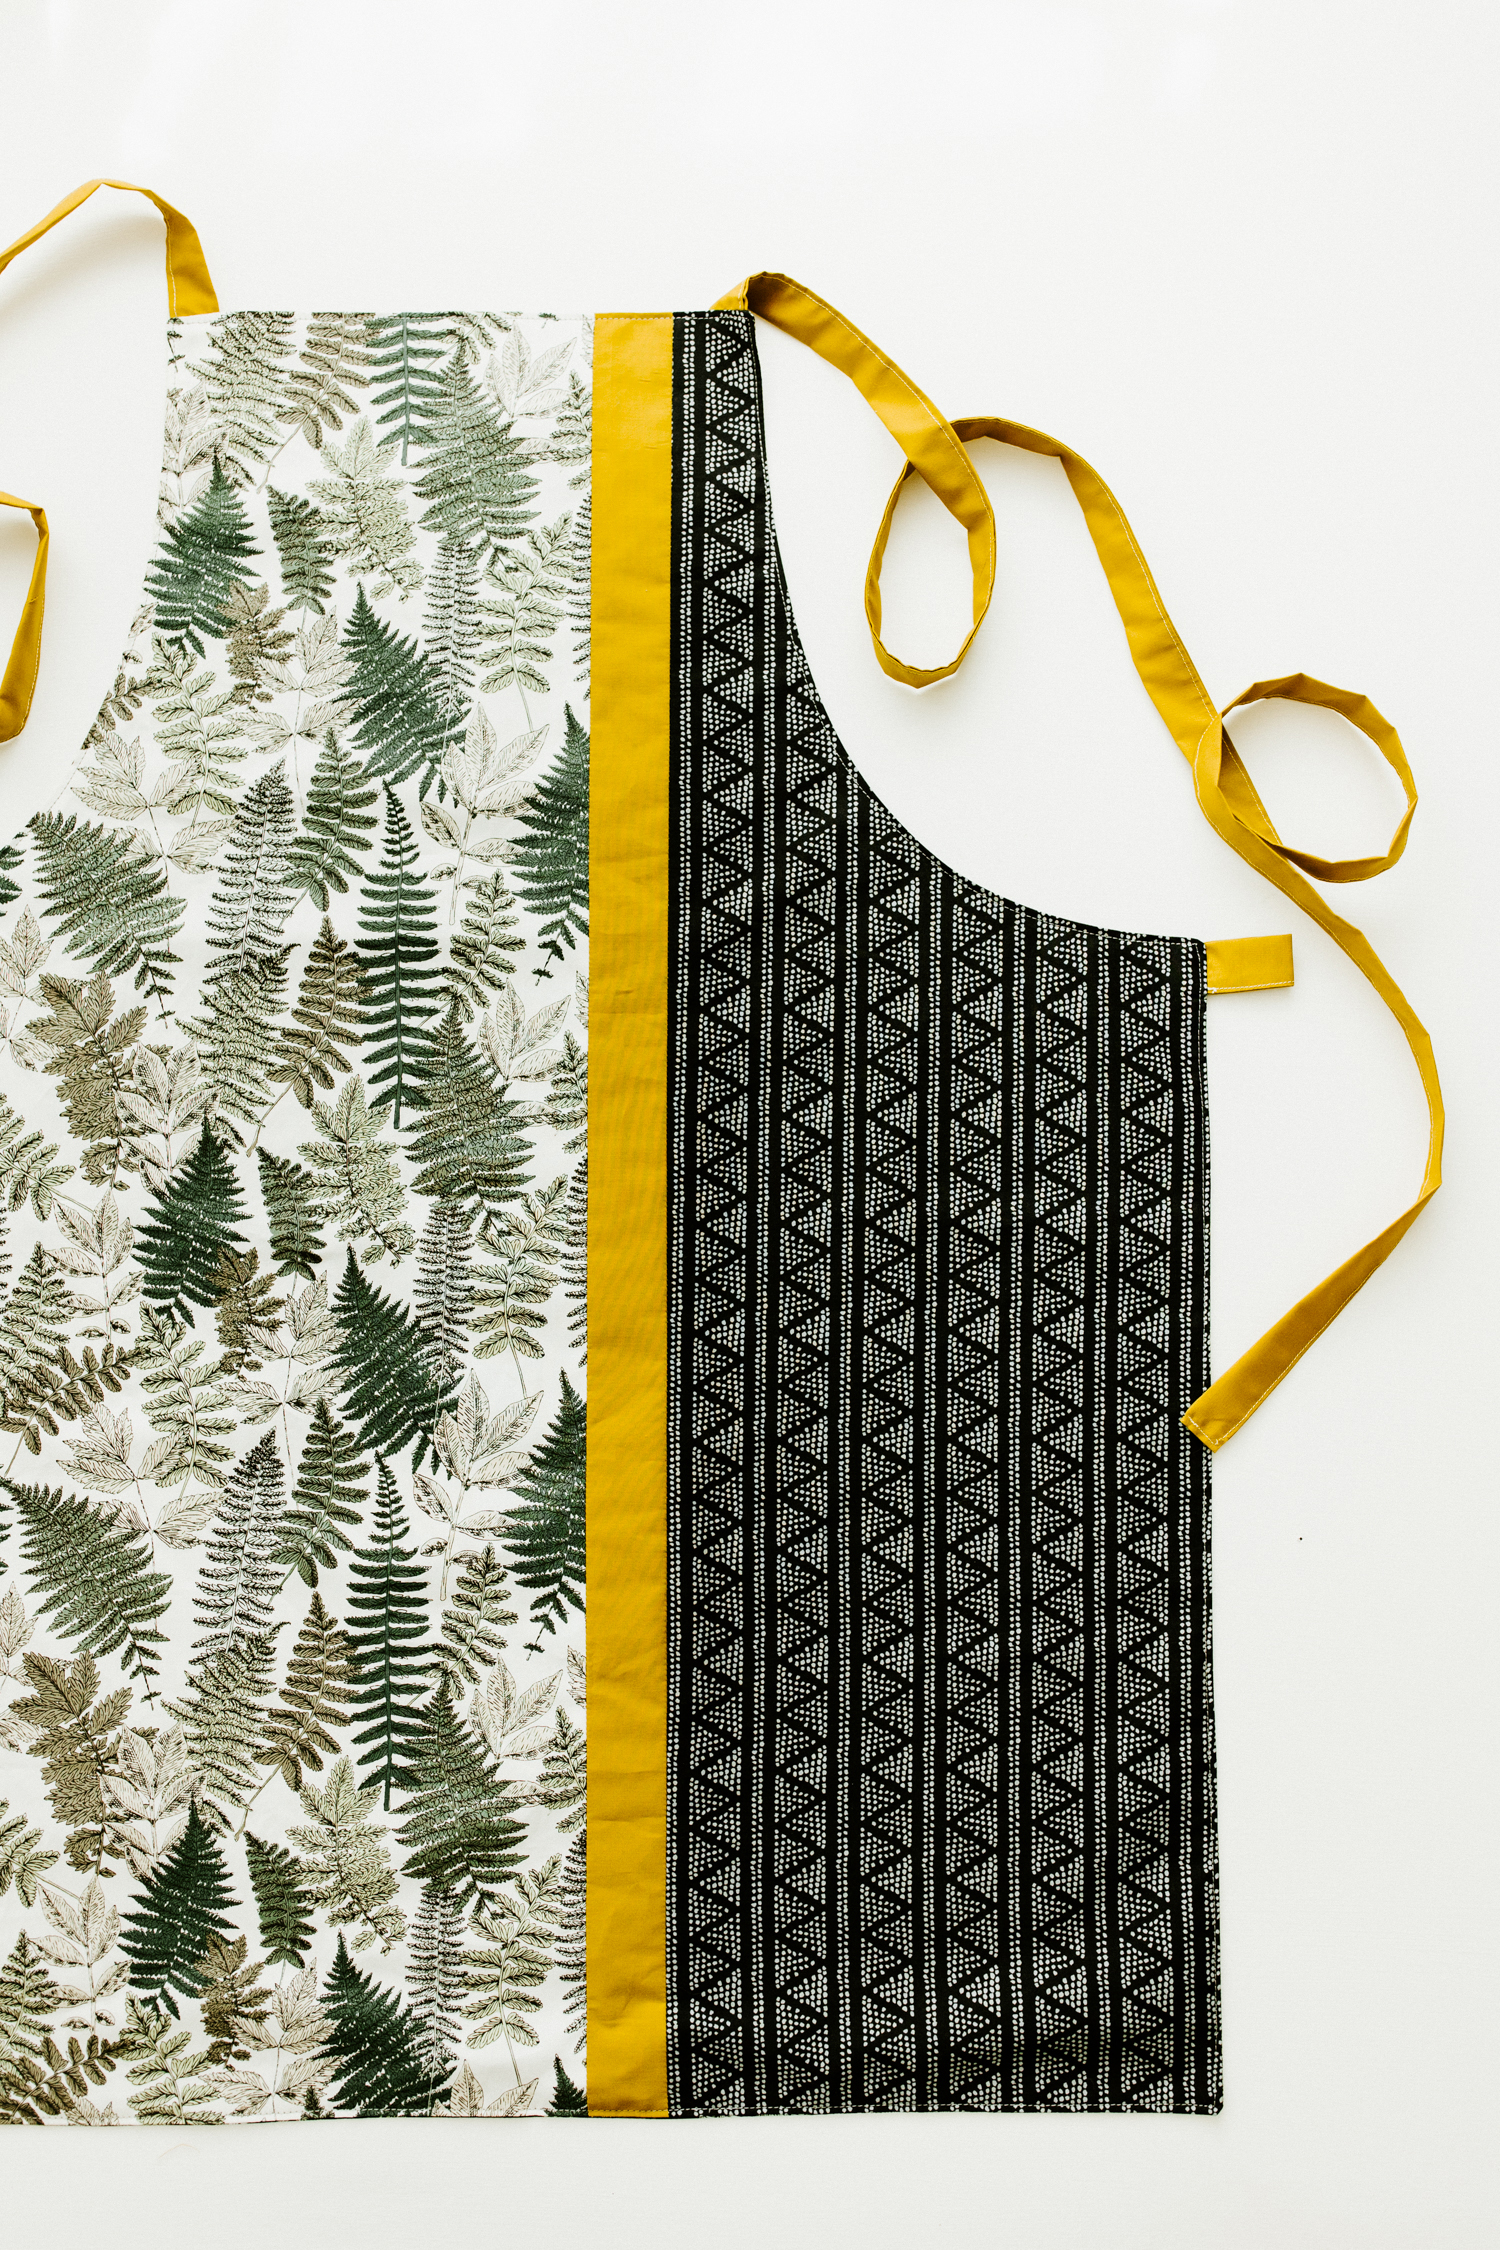 Learn how to make a fast and easy color block apron in this step by step photo tutorial. Perfect for summer grilling and baking, this apron makes a great gift too! suzyquilts.com #quilting #sewingdiy